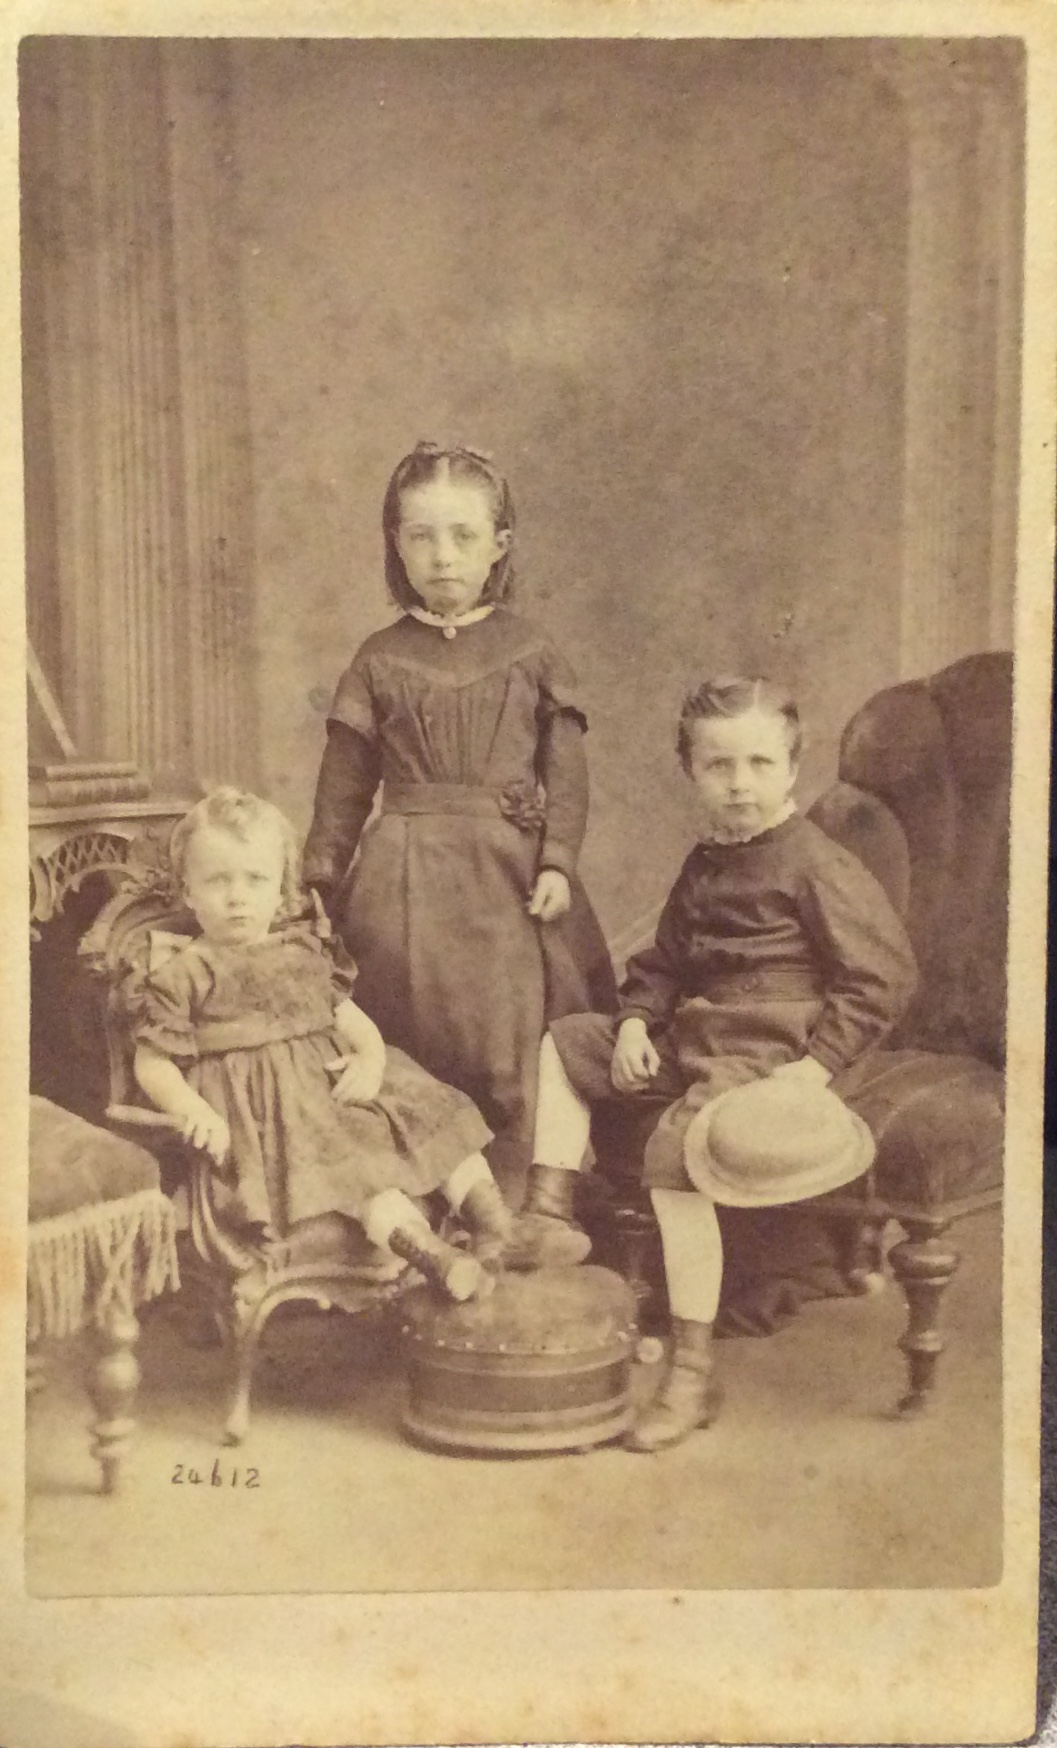 Thomas Dempsey 1861-1921, Mary Ellen Dempsey Shannon 1858-1940, and John Dempsey 1860-193